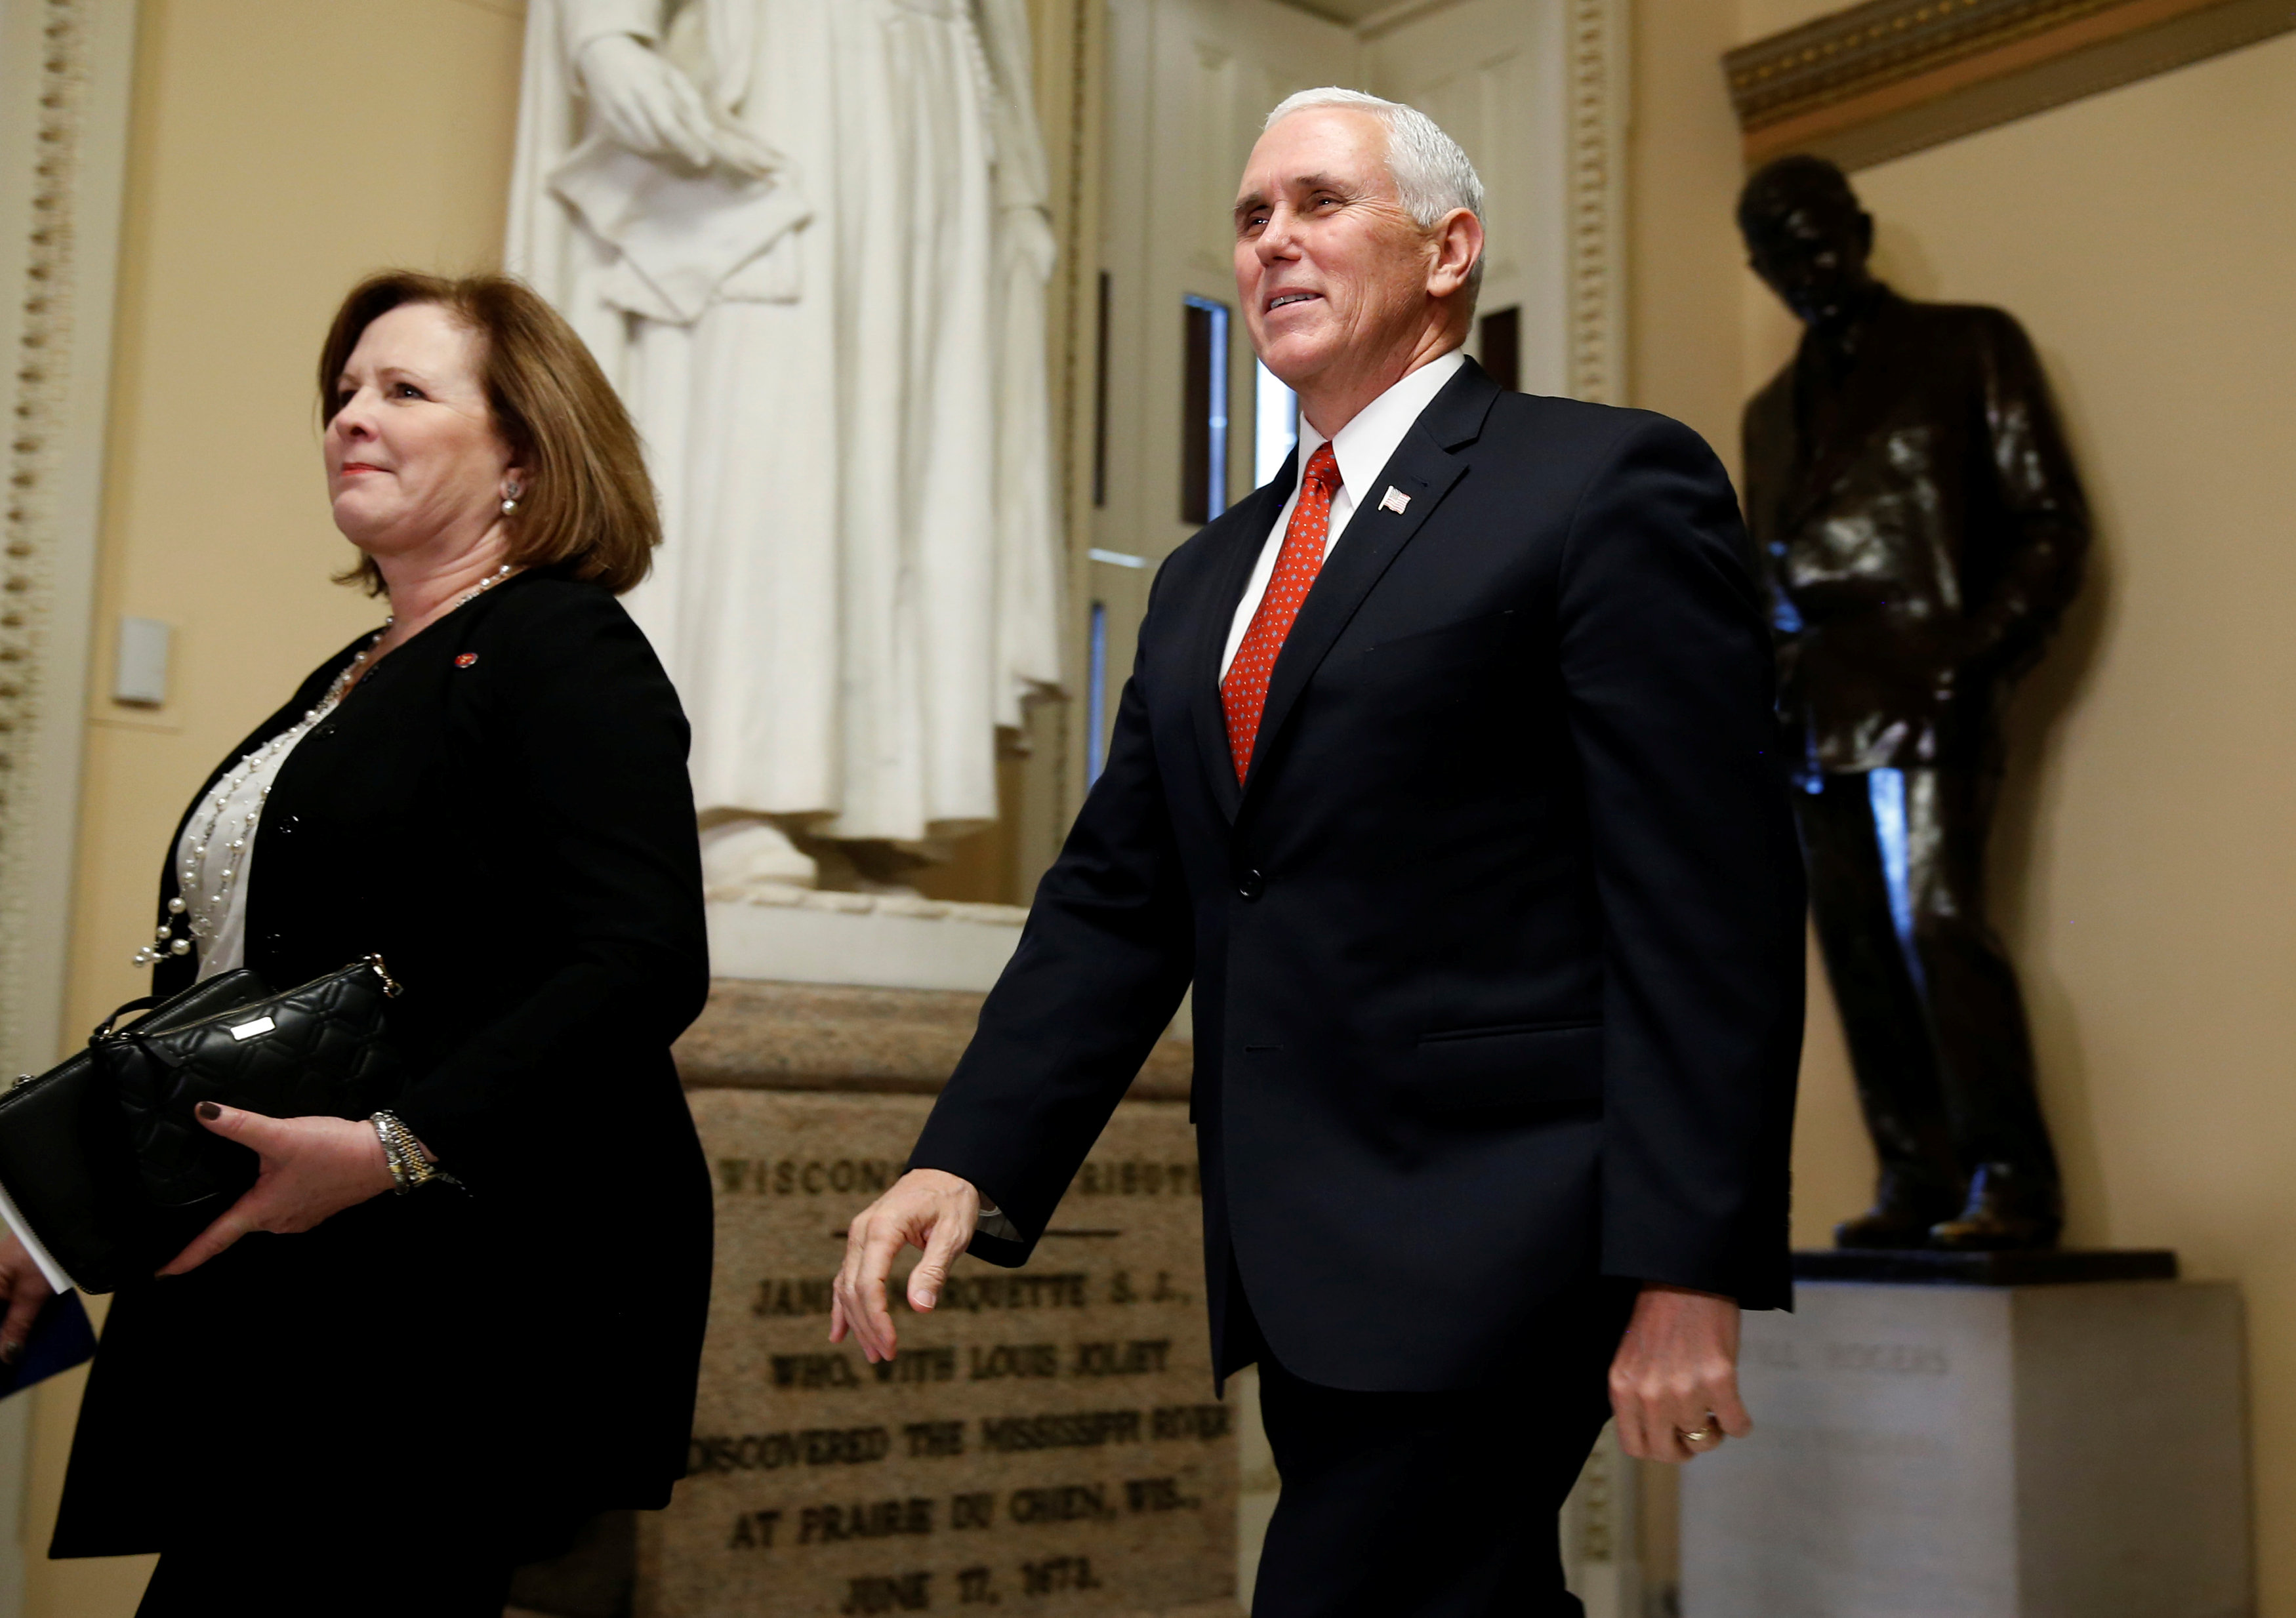 US Vice President Mike Pence walks outside the House of Representatives at the US Capitol in Washington, U.S., December 19, 2017. Credit: Reuters/Joshua Roberts